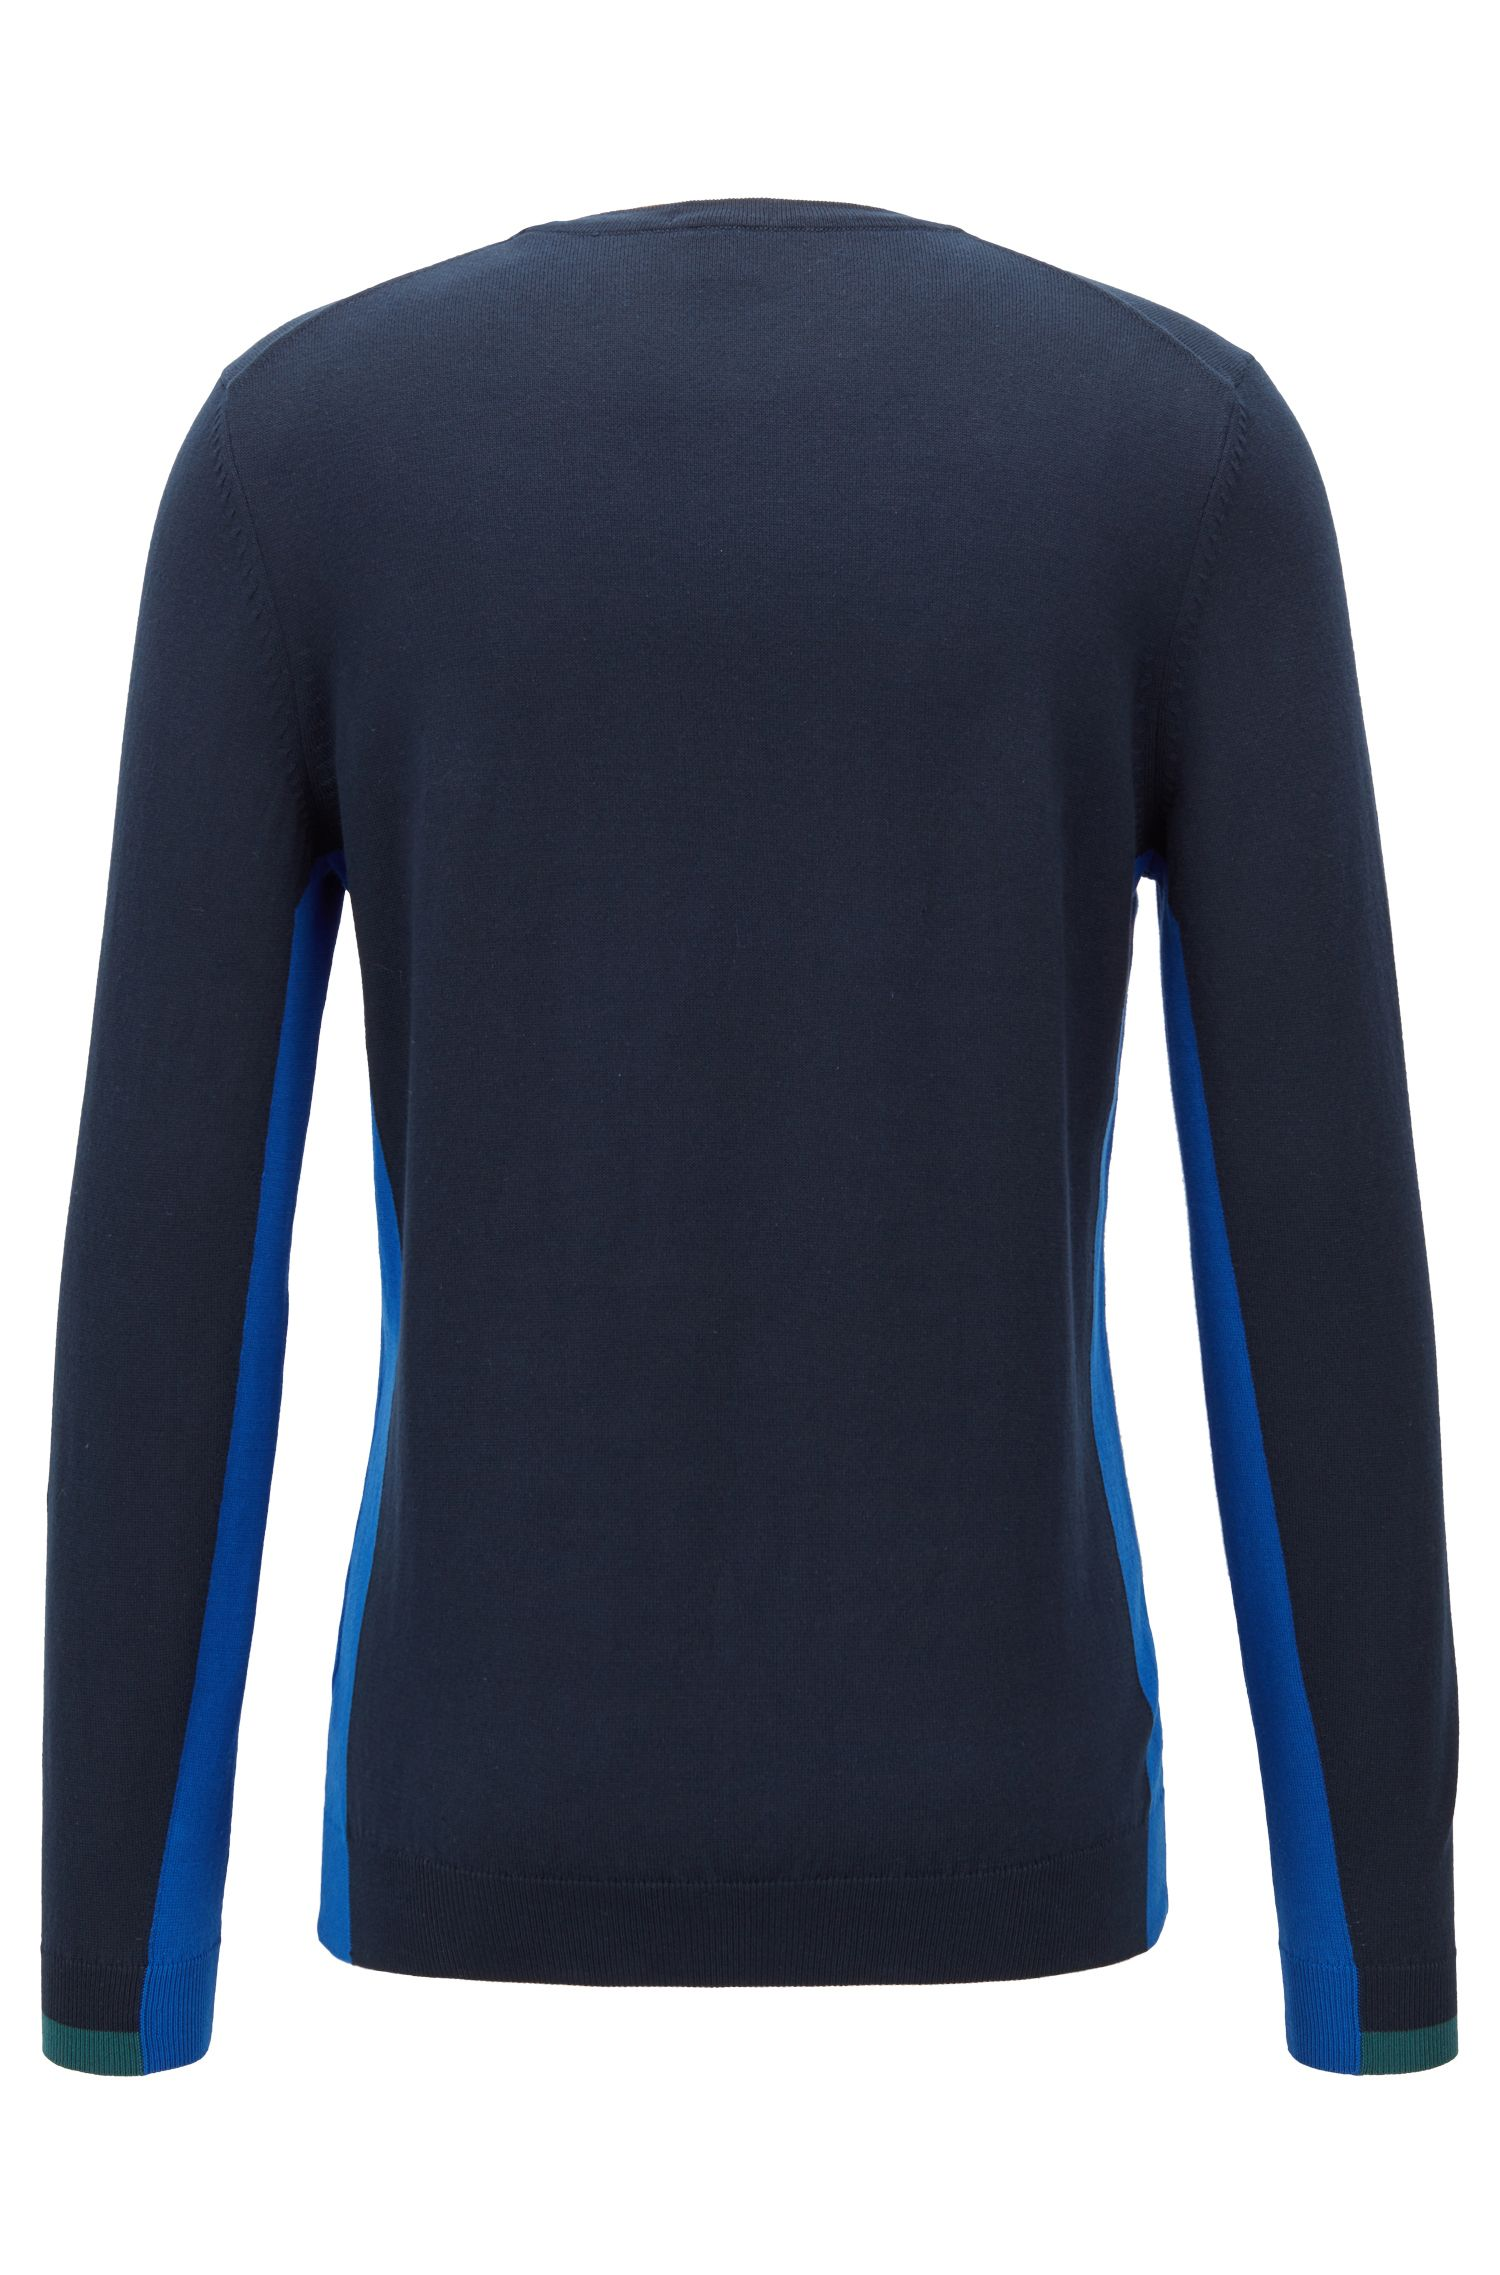 Crew-neck sweater in pure cotton with colourblock intarsia